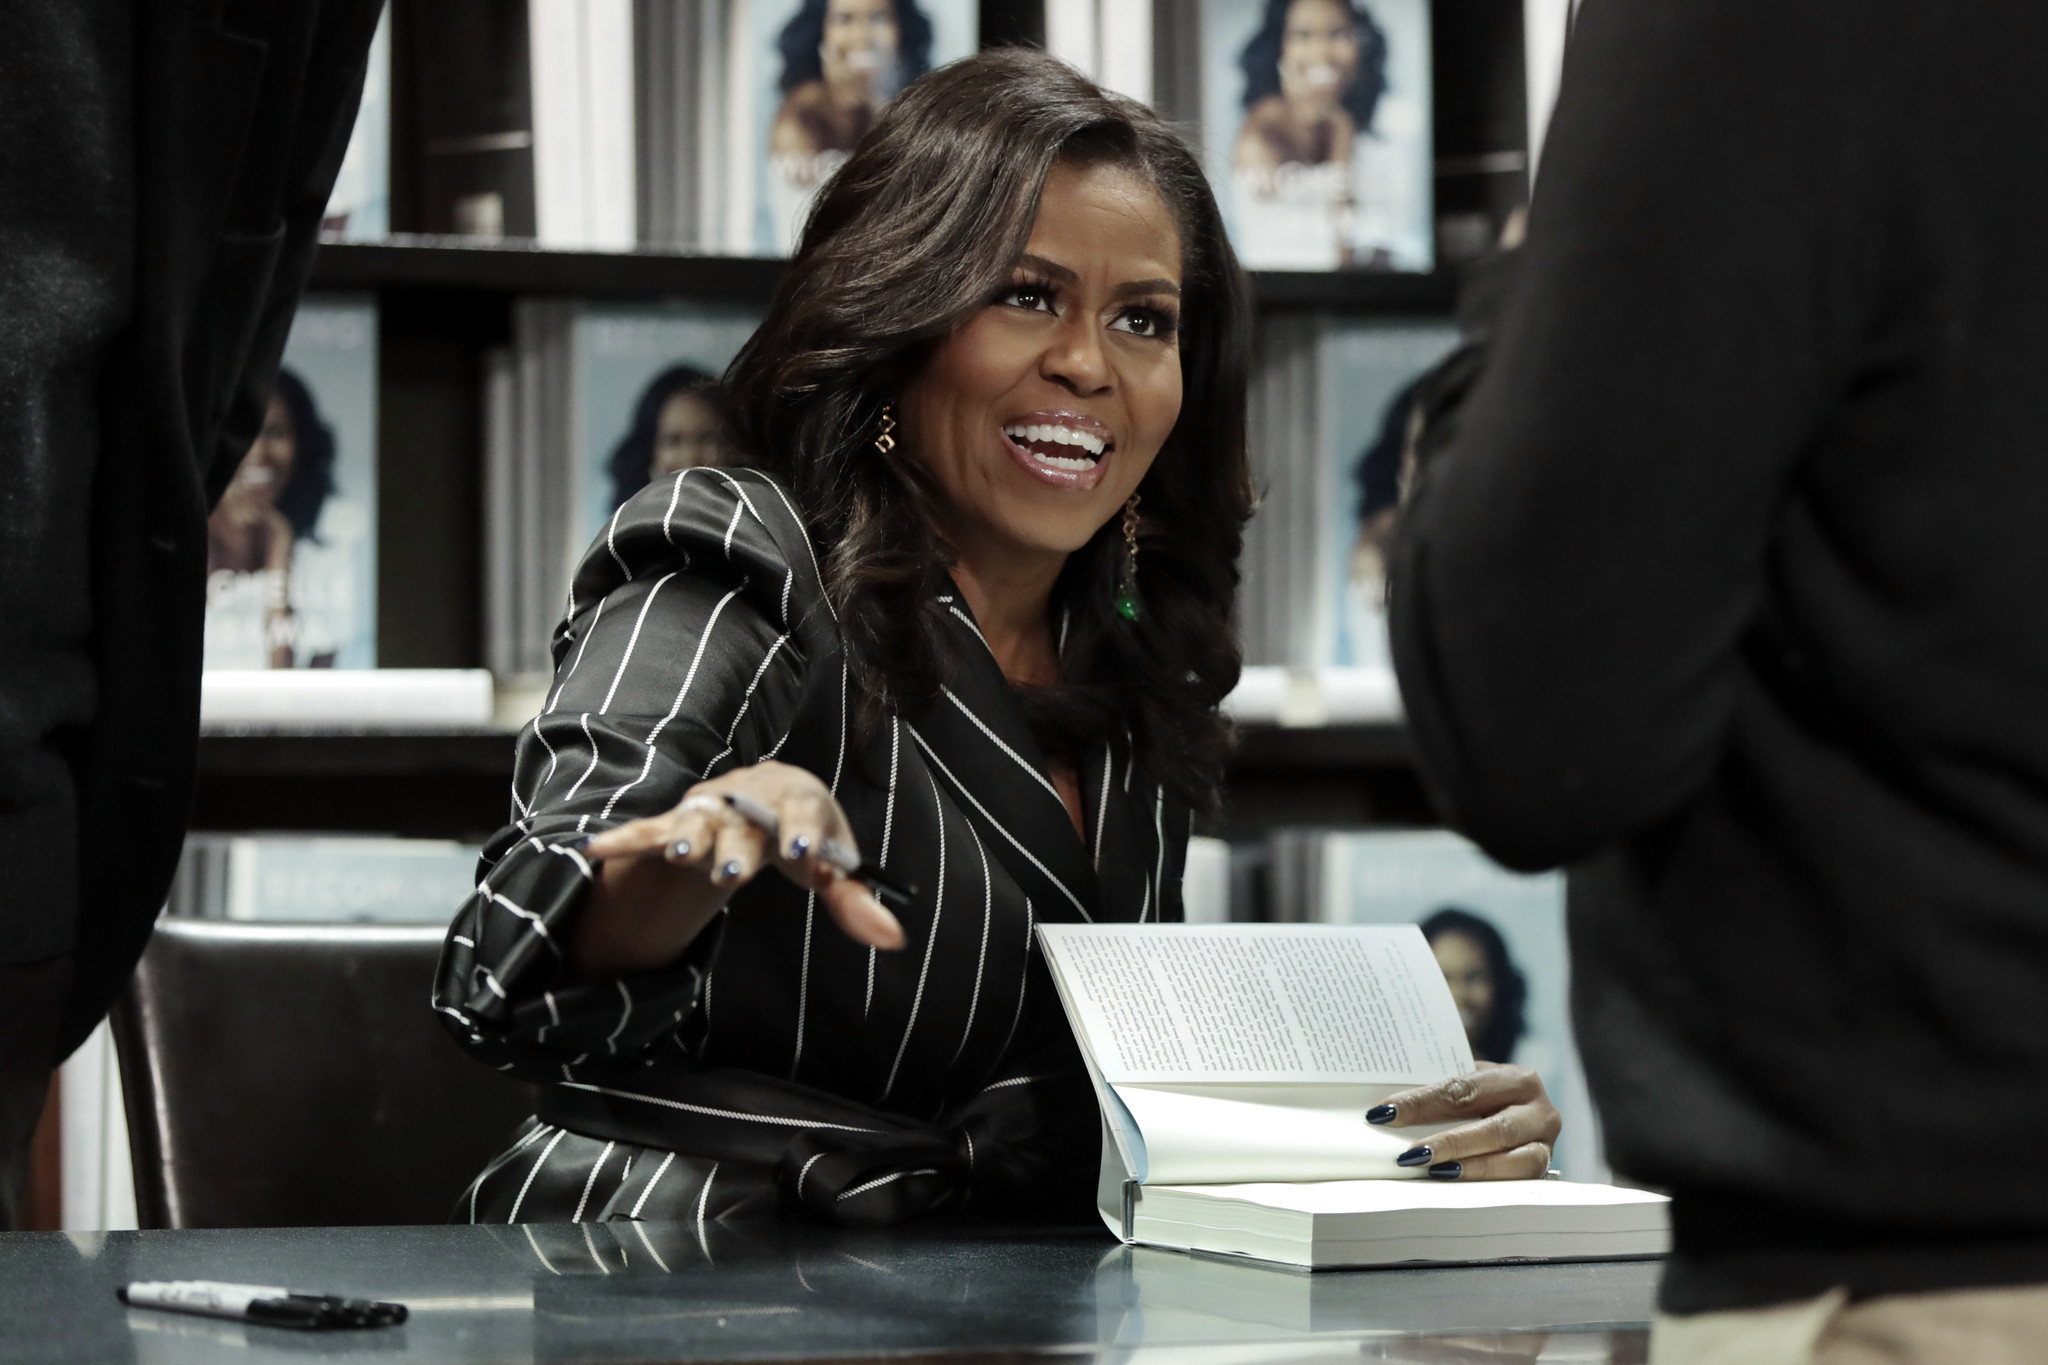 Michelle Obama wins her first Grammy for 'Becoming' audiobook